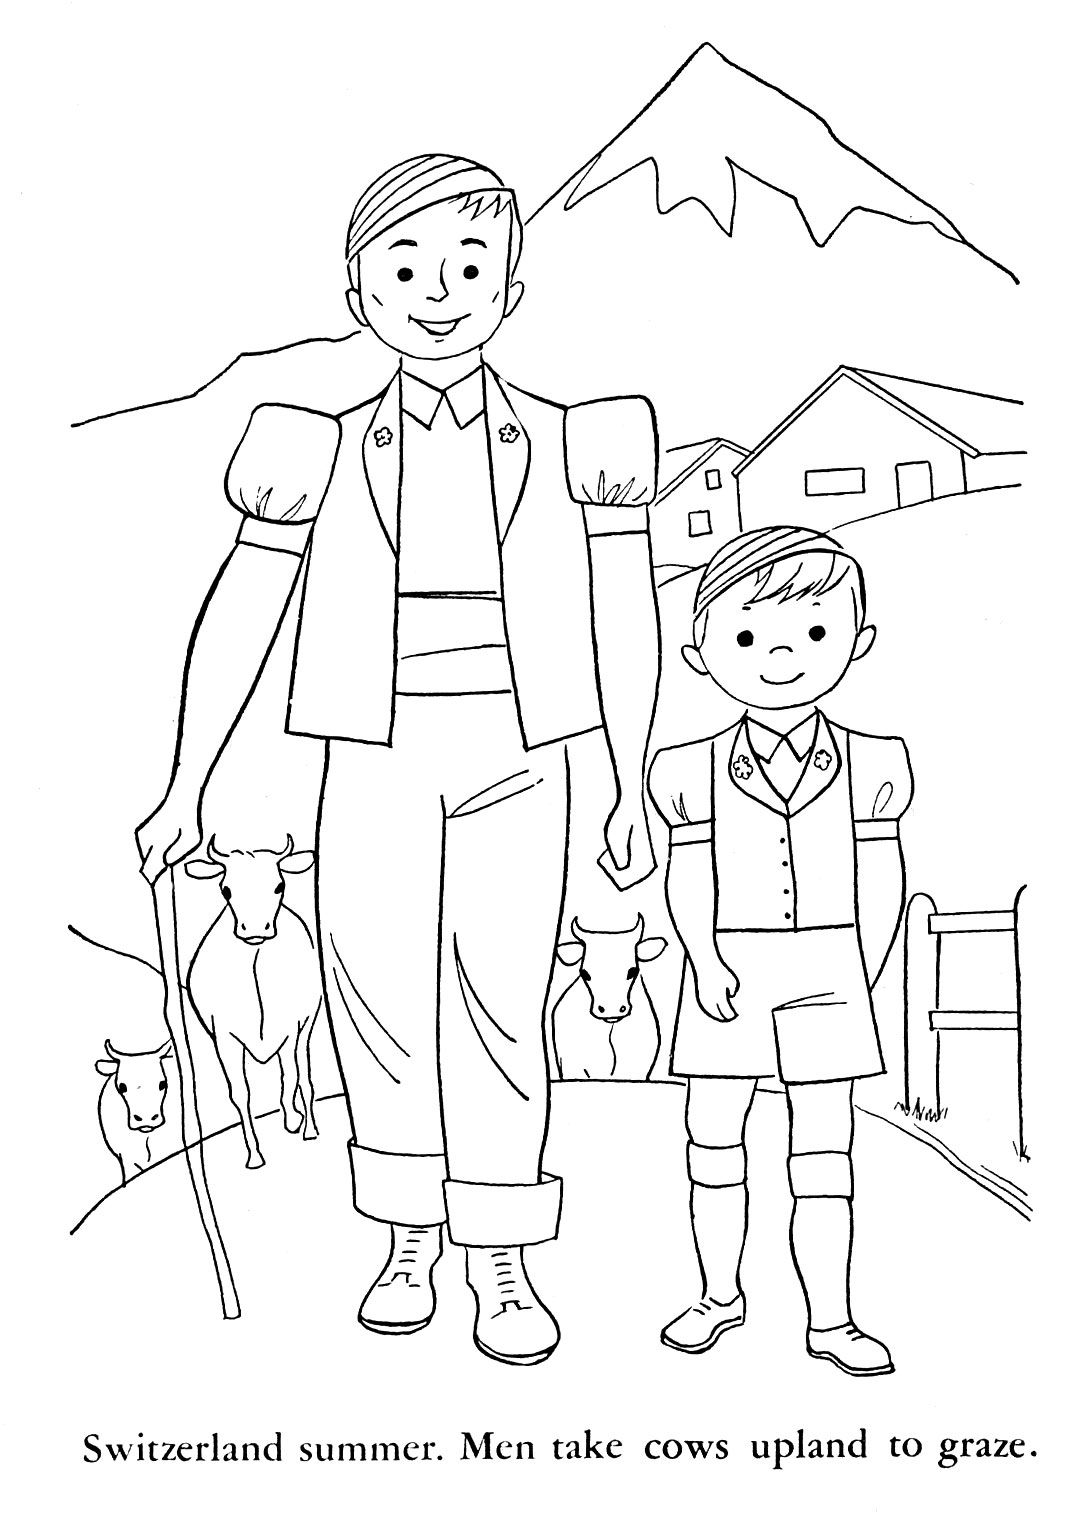 Italian Christmas Coloring Pages With Switzerland For Kids Children Of Other Lands 1954